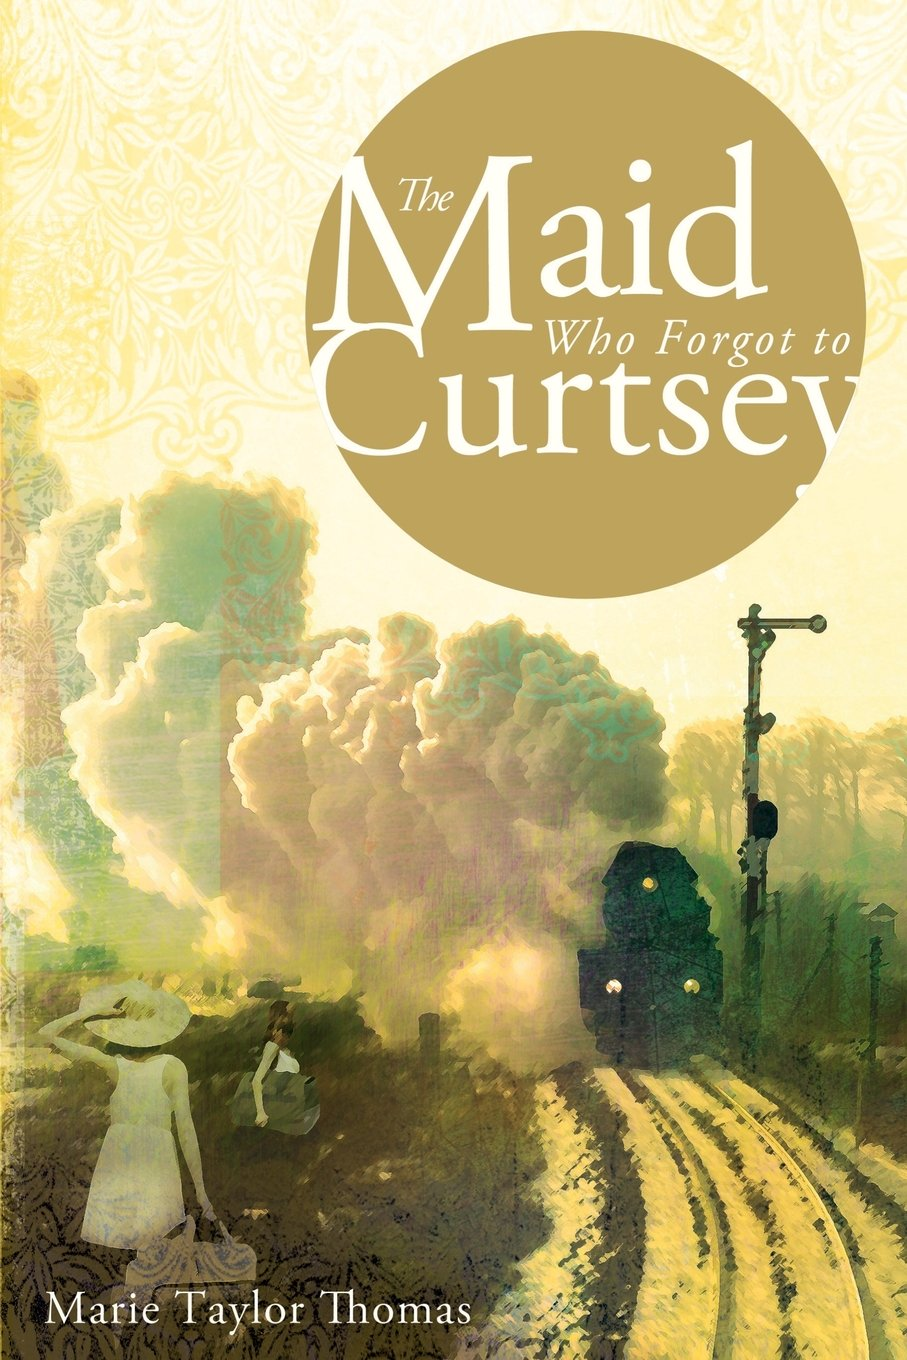 Download The Maid Who Forgot to Curtsey ebook